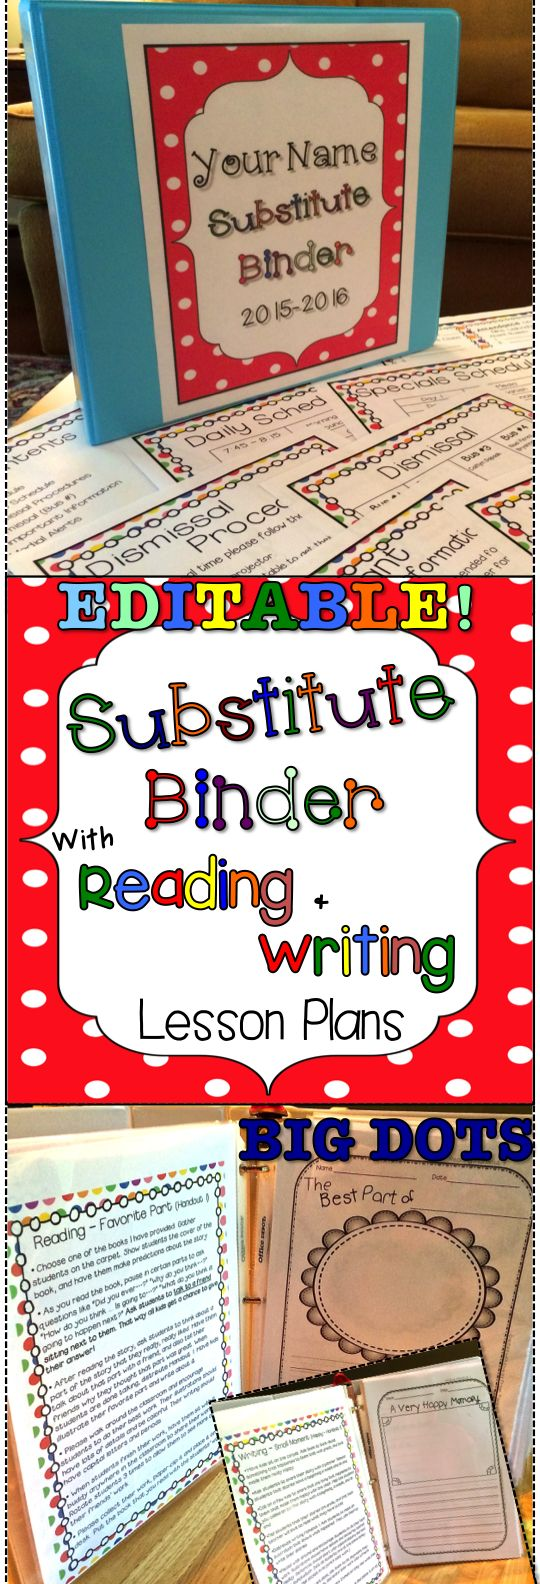 EDITABLE Substitute Binder with Reading and Writing Lesson Plans! Cover choices and EDITABLE templates that will make it easy for you to take a day off when you need one! Several Reading and Writing lesson plans PLUS handouts that go with each lesson are included. Comes with step by step directions. Big Dots theme.